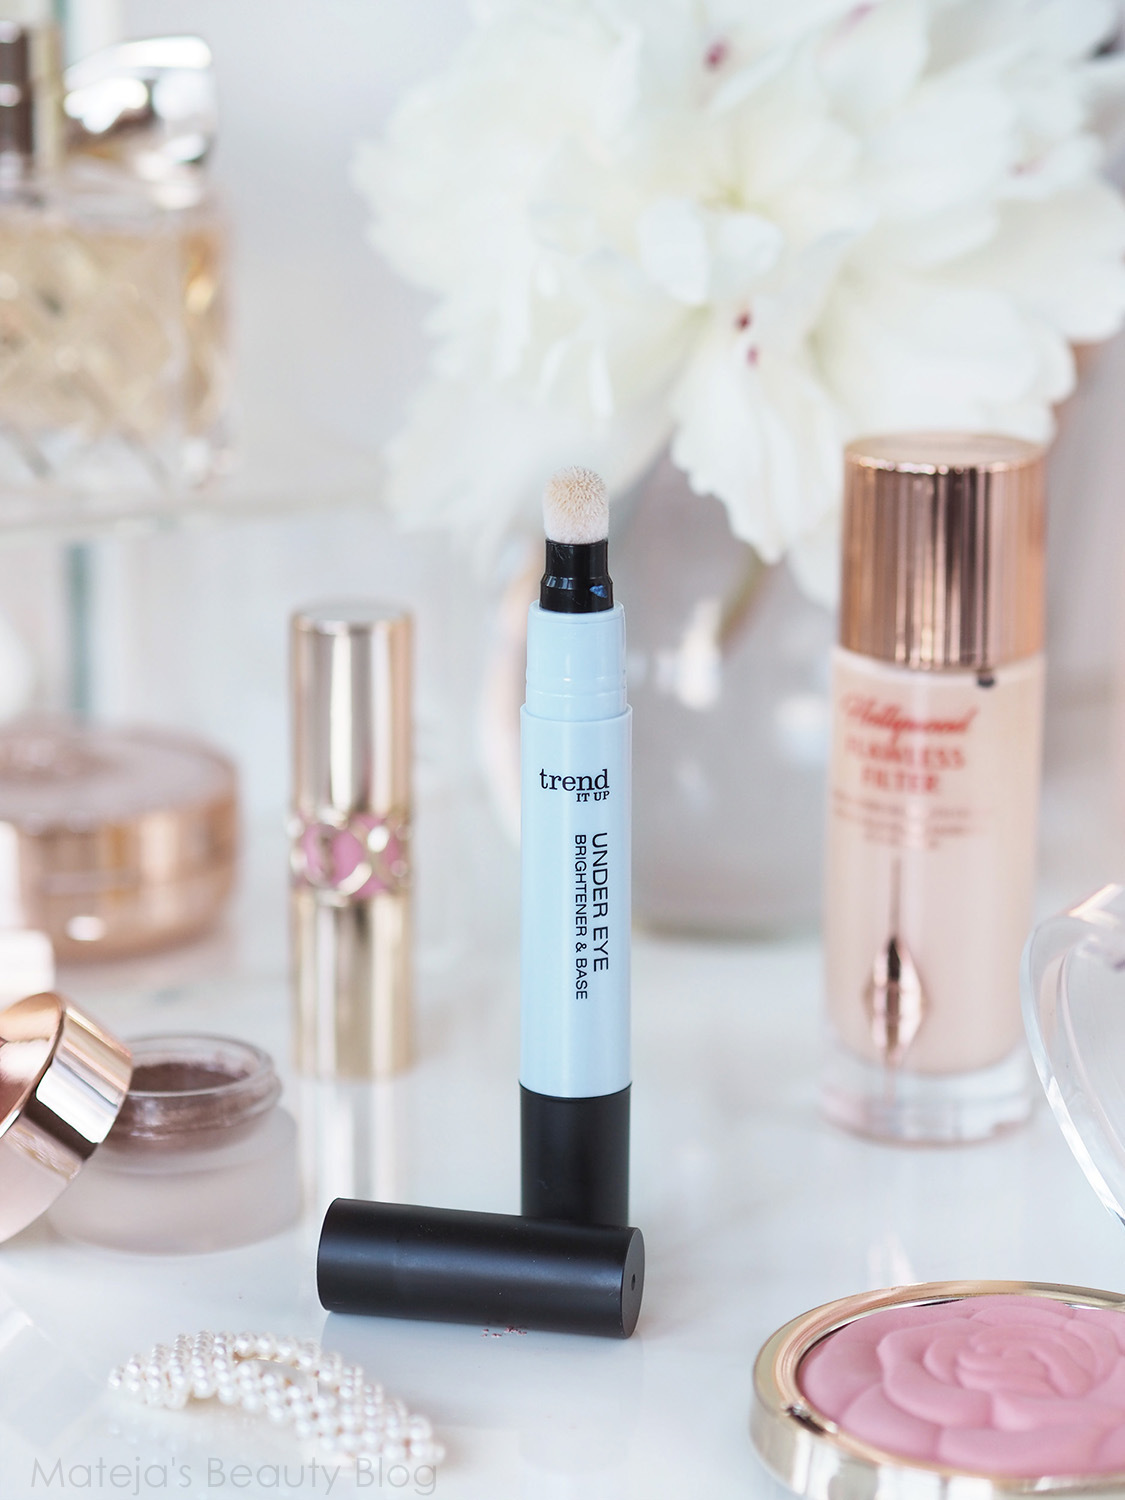 Trend it up Under Eye Brightening & Base